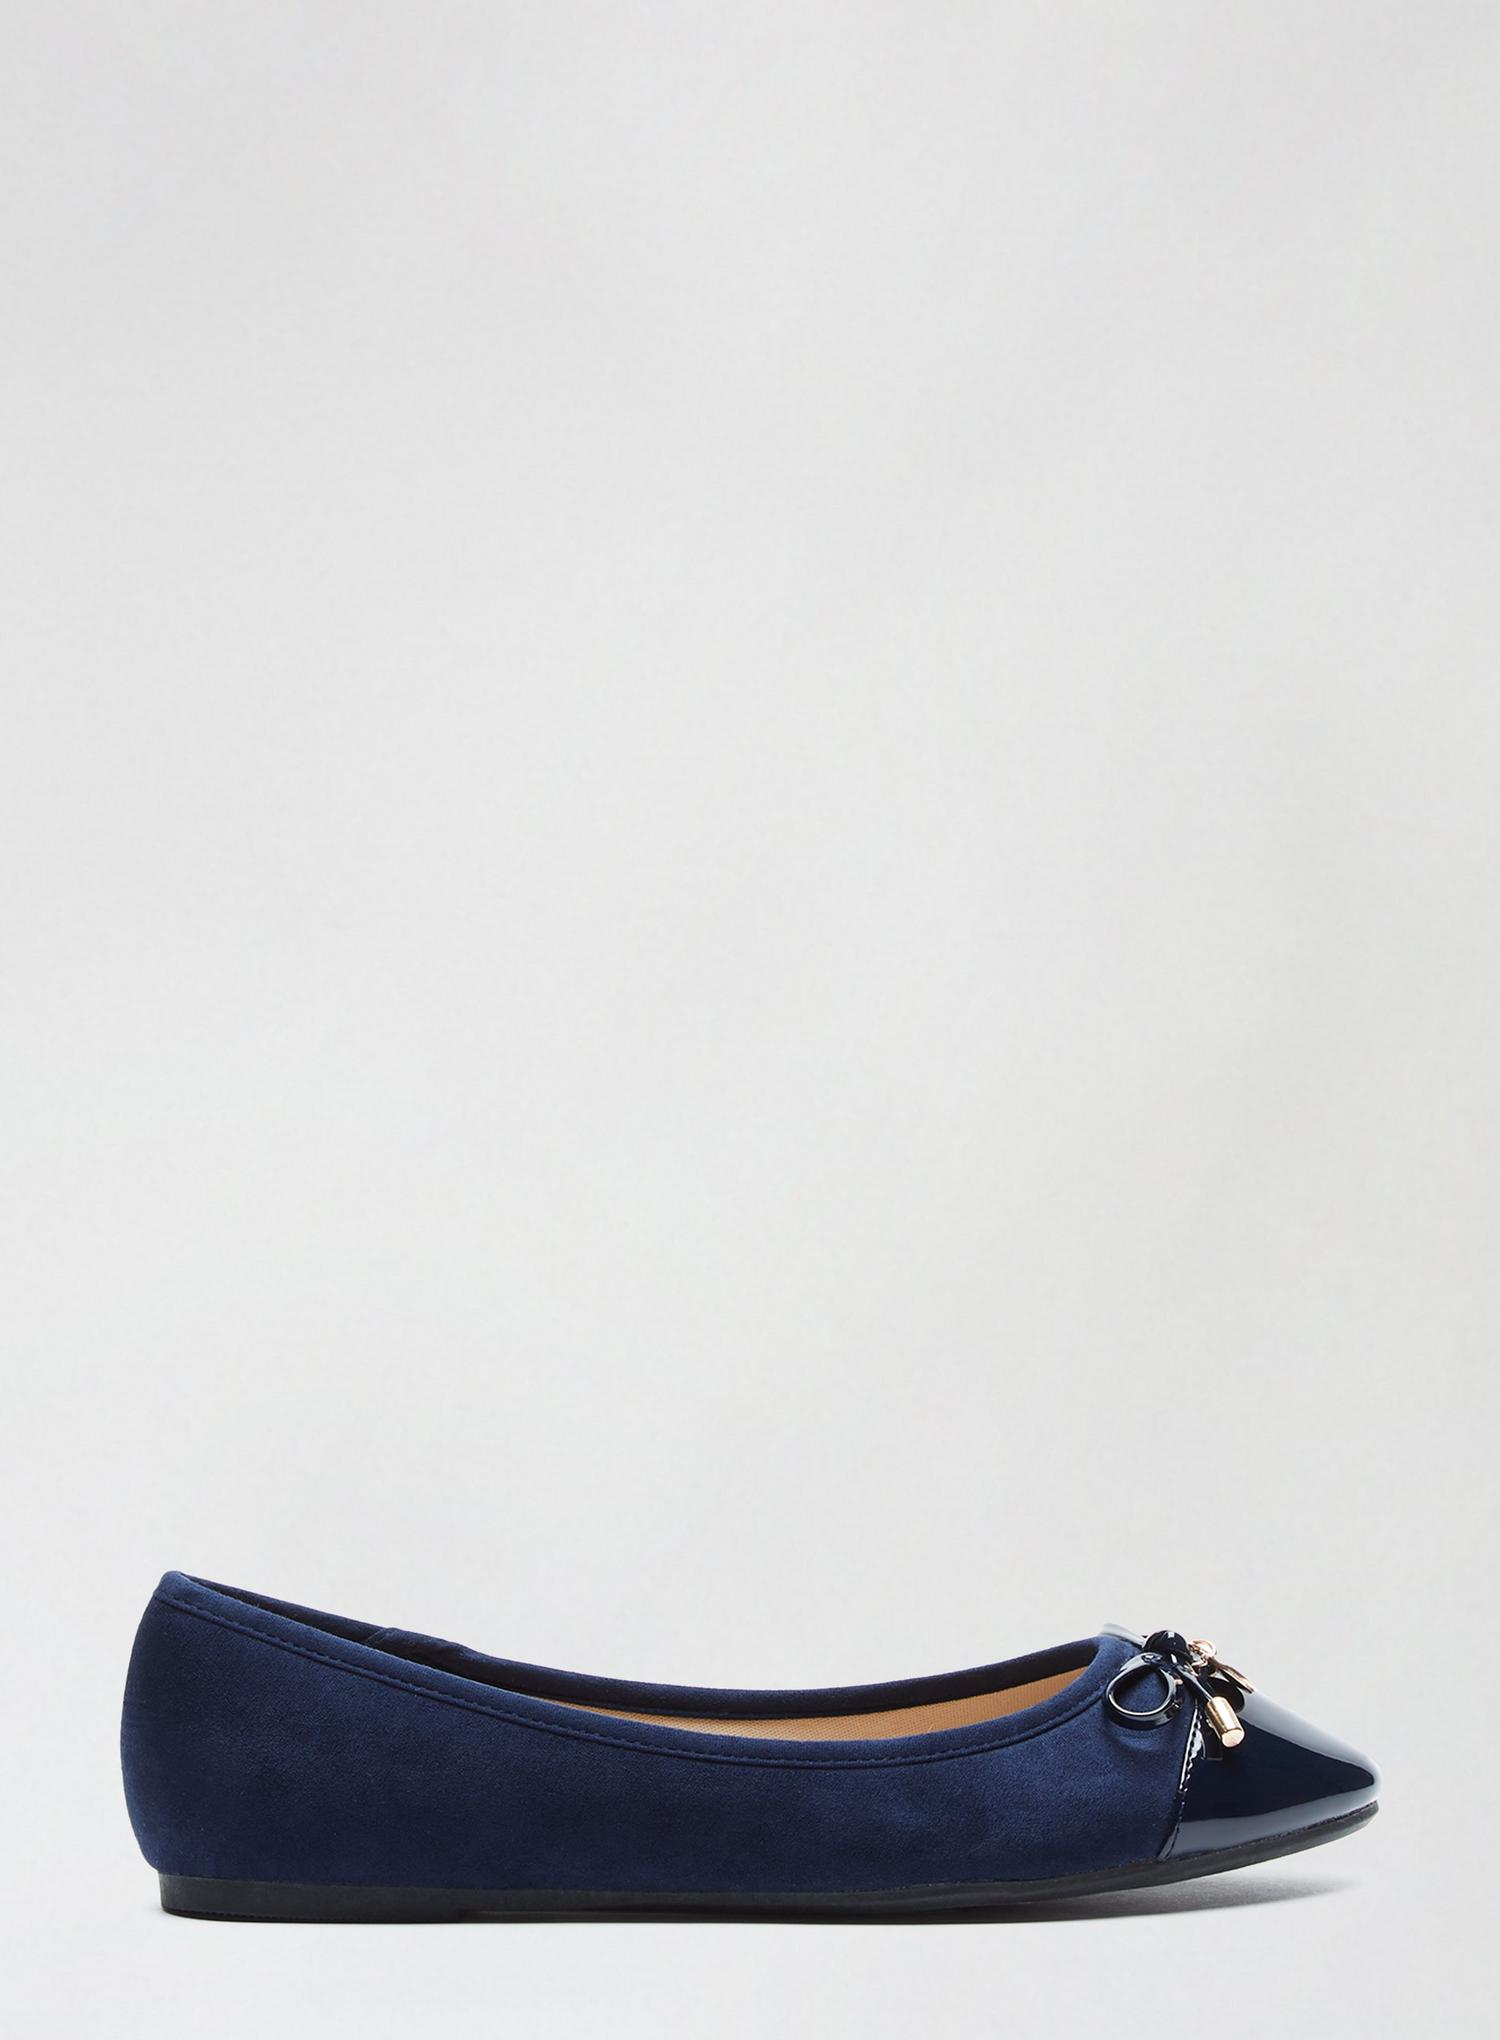 148 Wide Fit Navy Pacific Ballerina Pumps image number 4